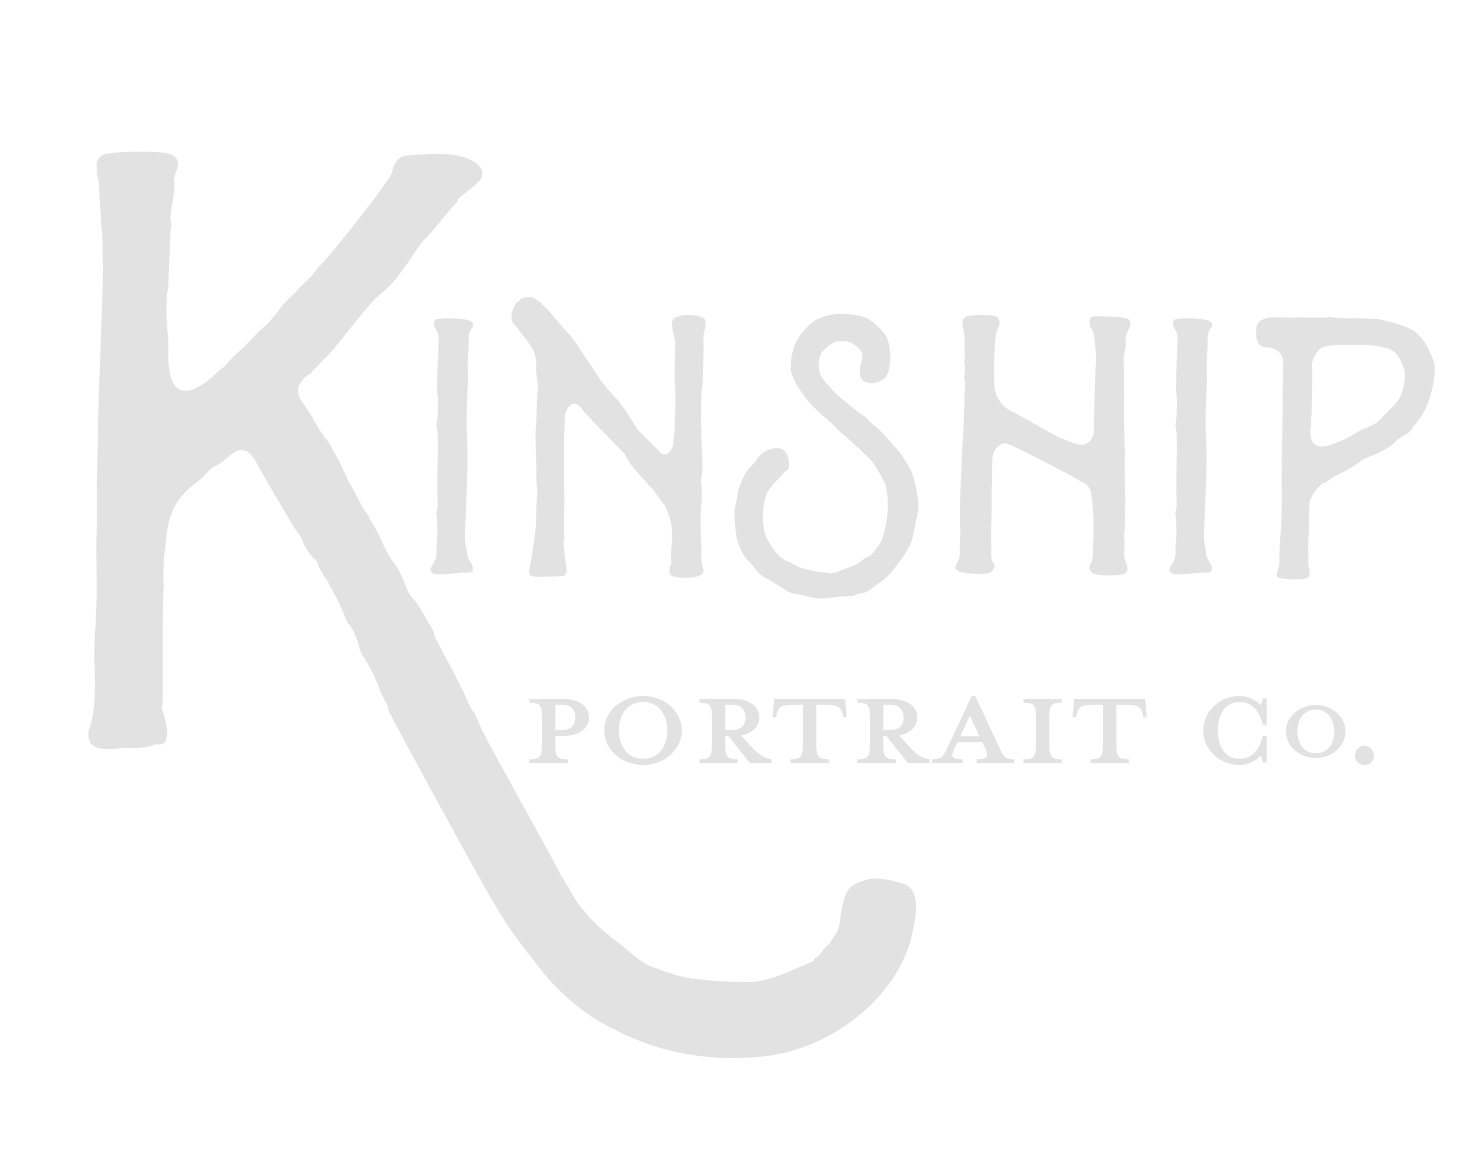 Kinship Portrait Co.